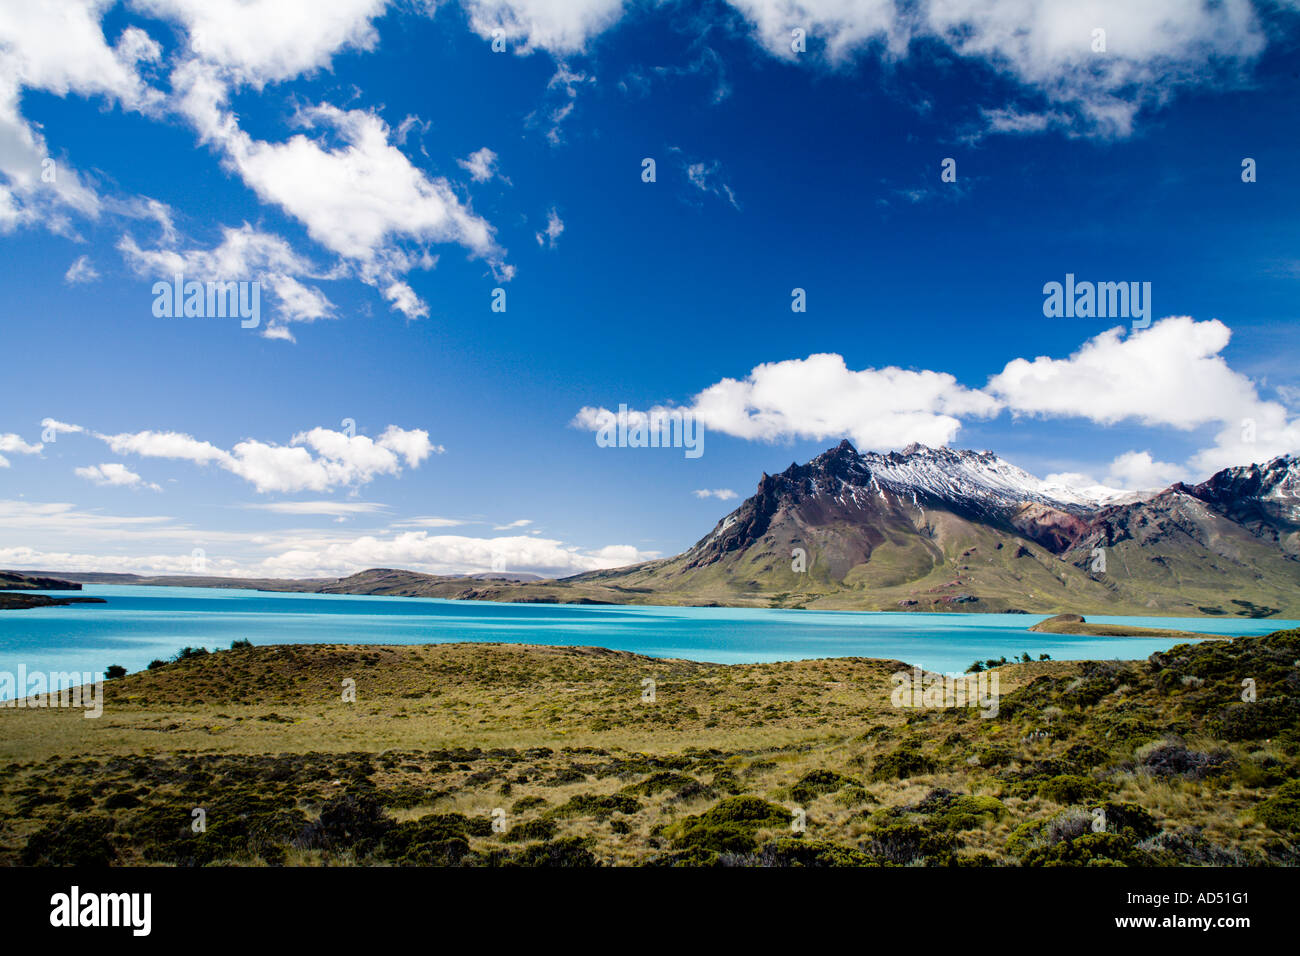 Cerro Mie and lake Belgrano - Stock Image